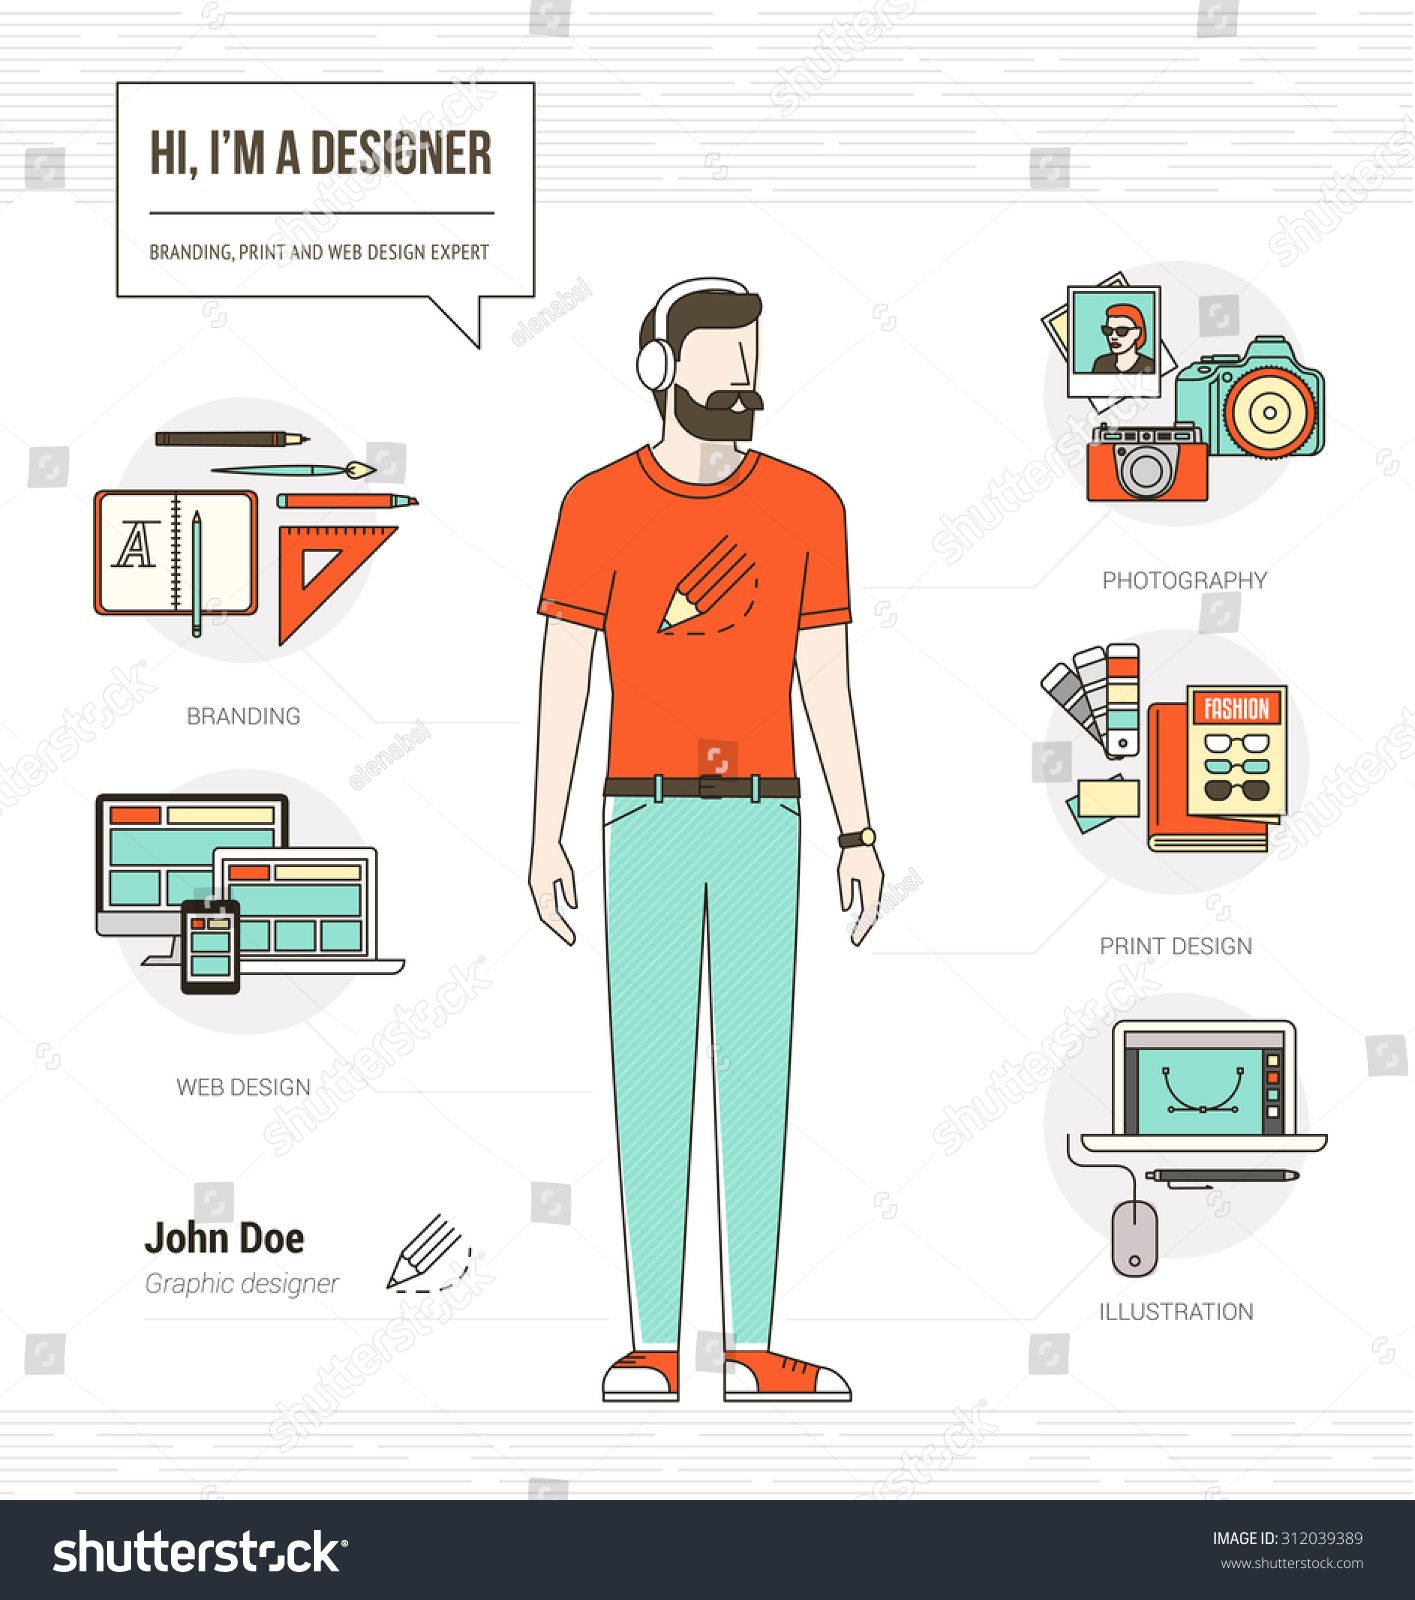 professional graphic designer photographer illustrator infographic professional graphic designer photographer and illustrator infographic skills resume tools and icons